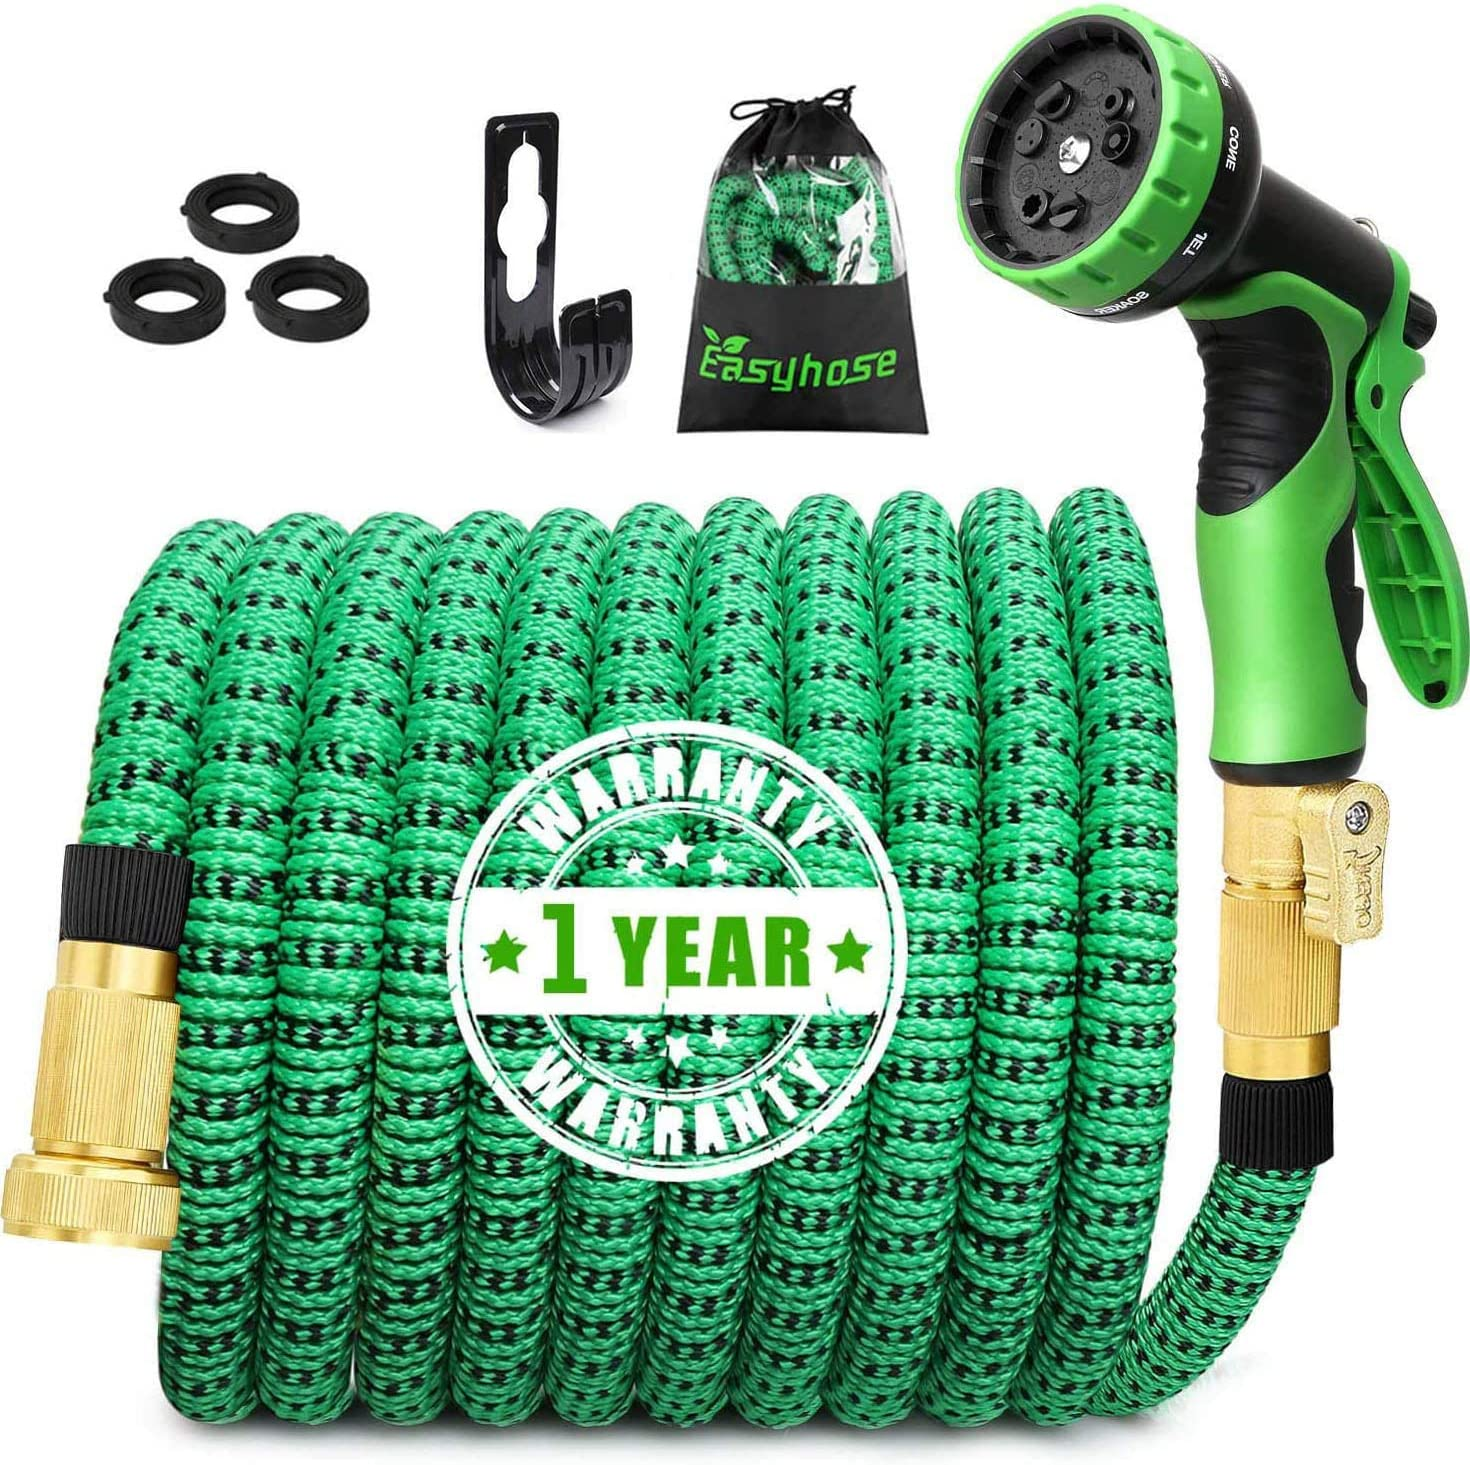 EASYHOSE Garden Hose 25FT/50FT/100FT, Expandable Water Hose with Extra-Strong Brass Connector,9 Function Spray Nozzle, Flexible Hose with Enhanced Fabric,Superior Strength 3750D(100FT)